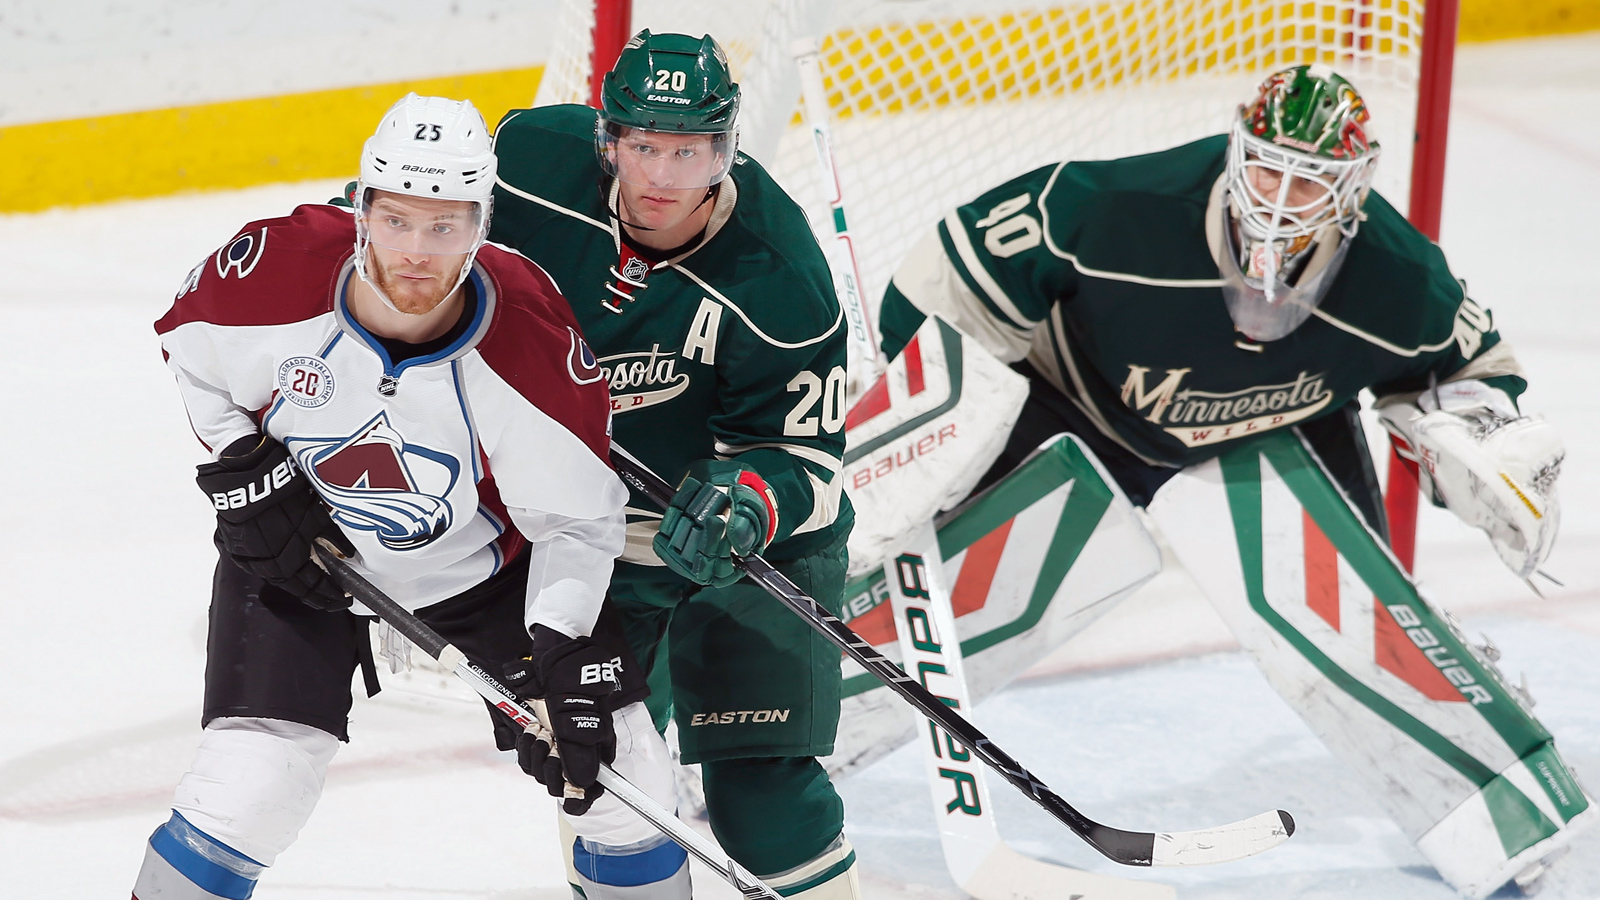 With Dubnyk hurt, relief goalie completes shutout for Wild against Avs